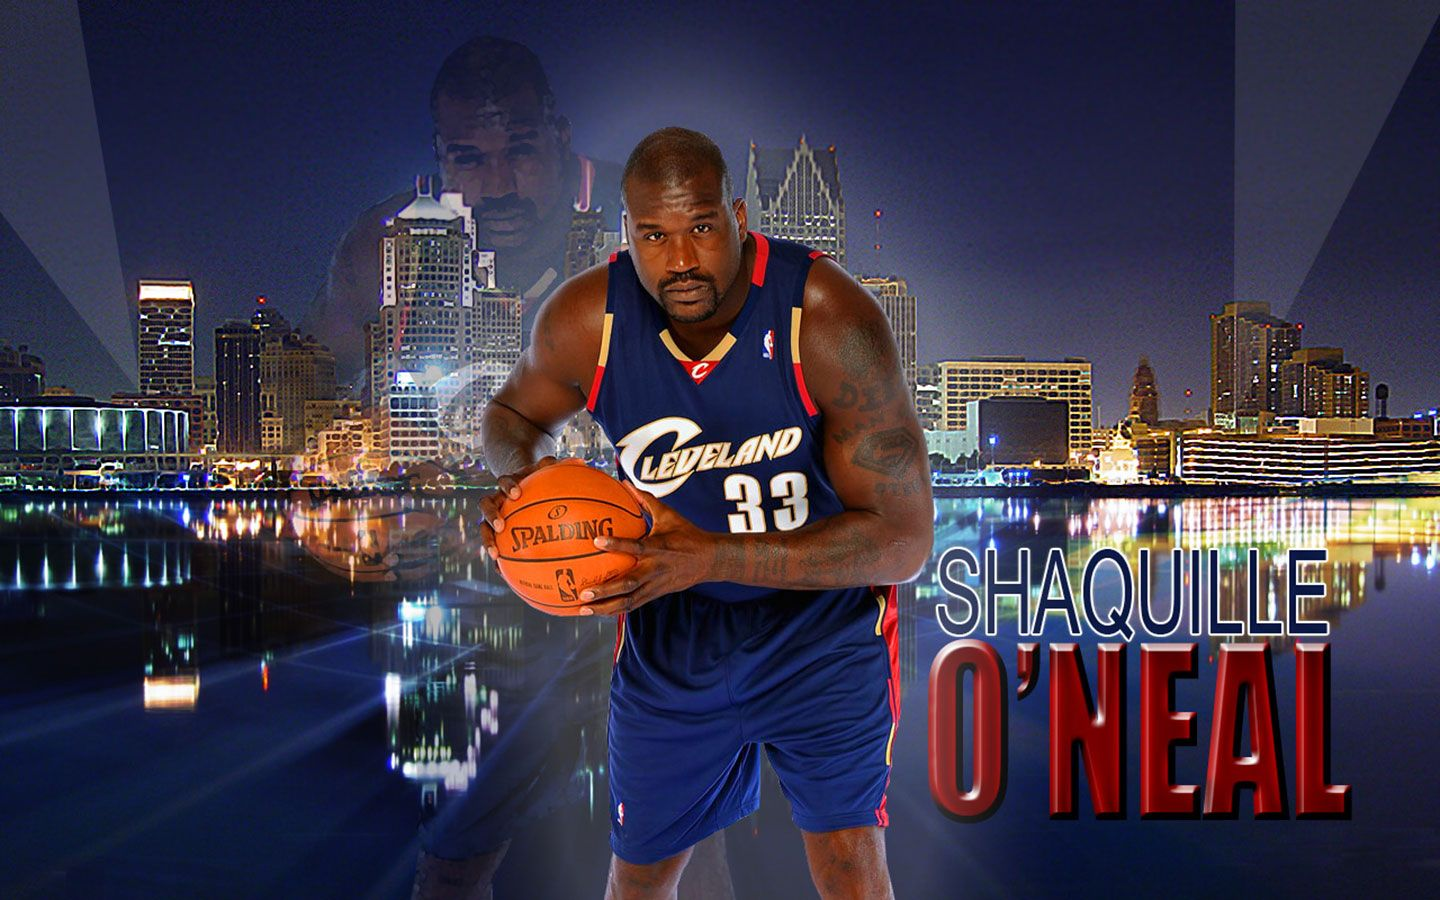 Shaquille O'Neal Wallpapers